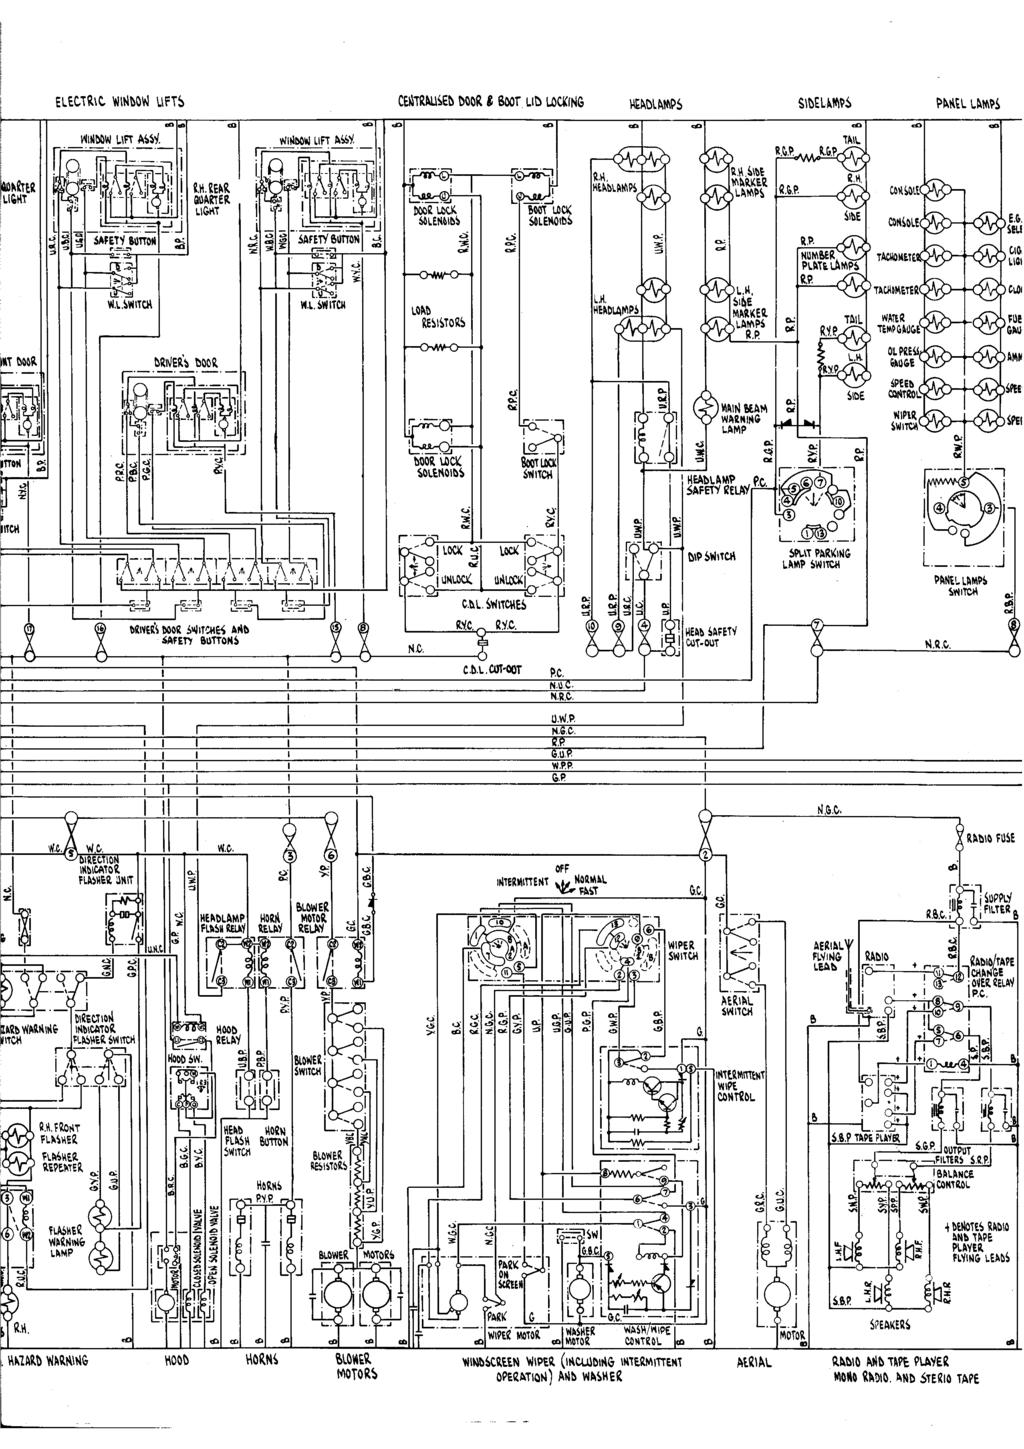 Left Hand Drive Cars From Serial Number Pdf Gbc Wiring Diagram 95 R Uc I Rdb N6c Ngc P Gup 6up Wpp G Gbg